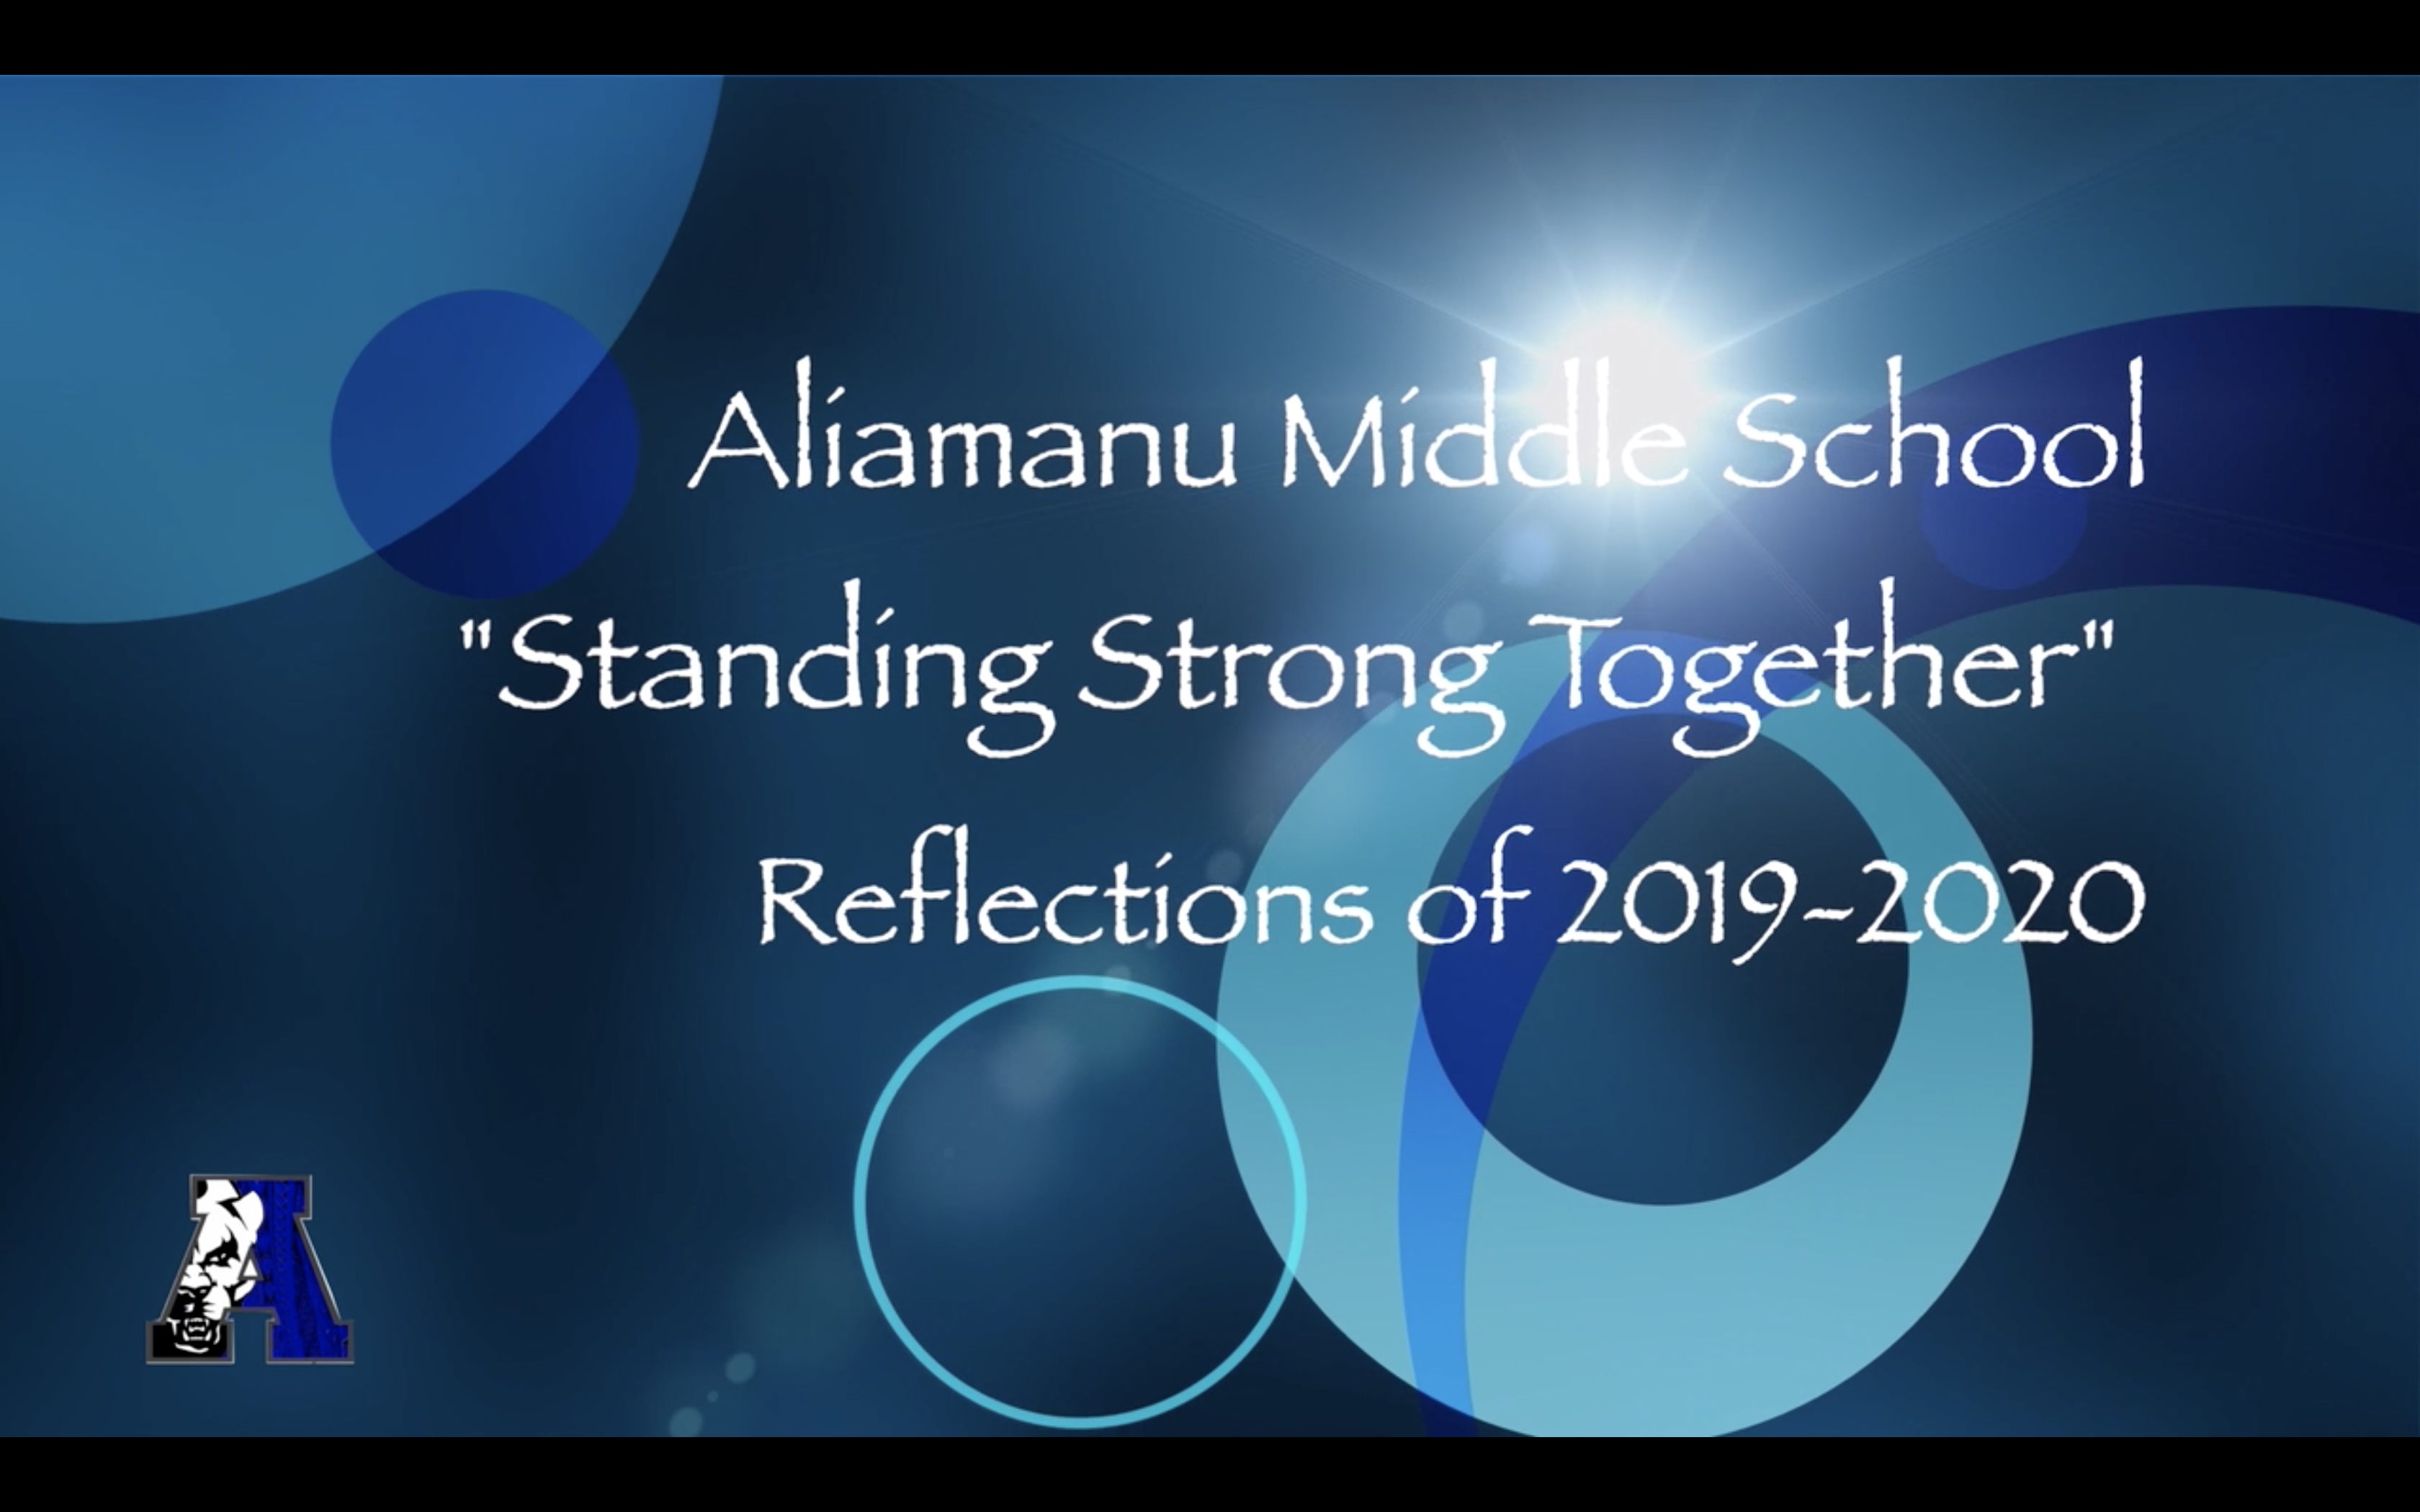 AMS Standing Strong Together reflection video for 2019